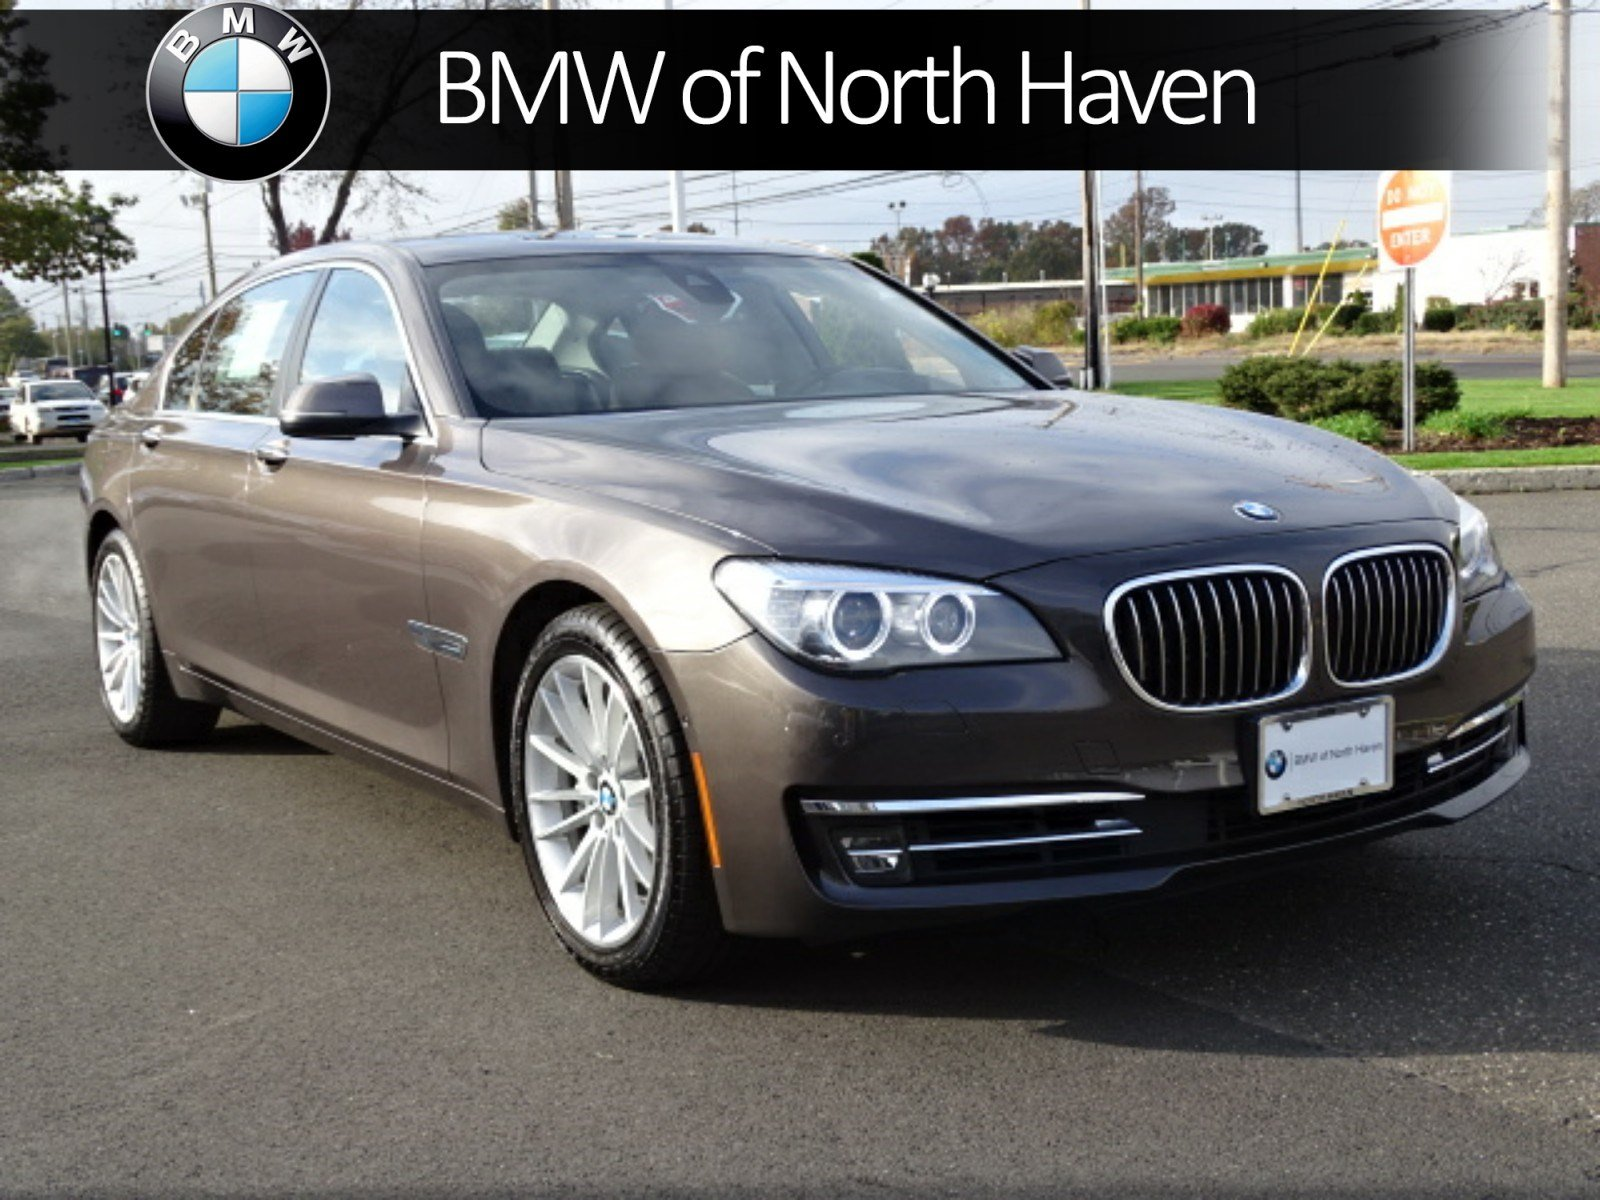 83 bmw 700 series 2014 2014 bmw 7 series for sale near baltimore md new car review featured. Black Bedroom Furniture Sets. Home Design Ideas